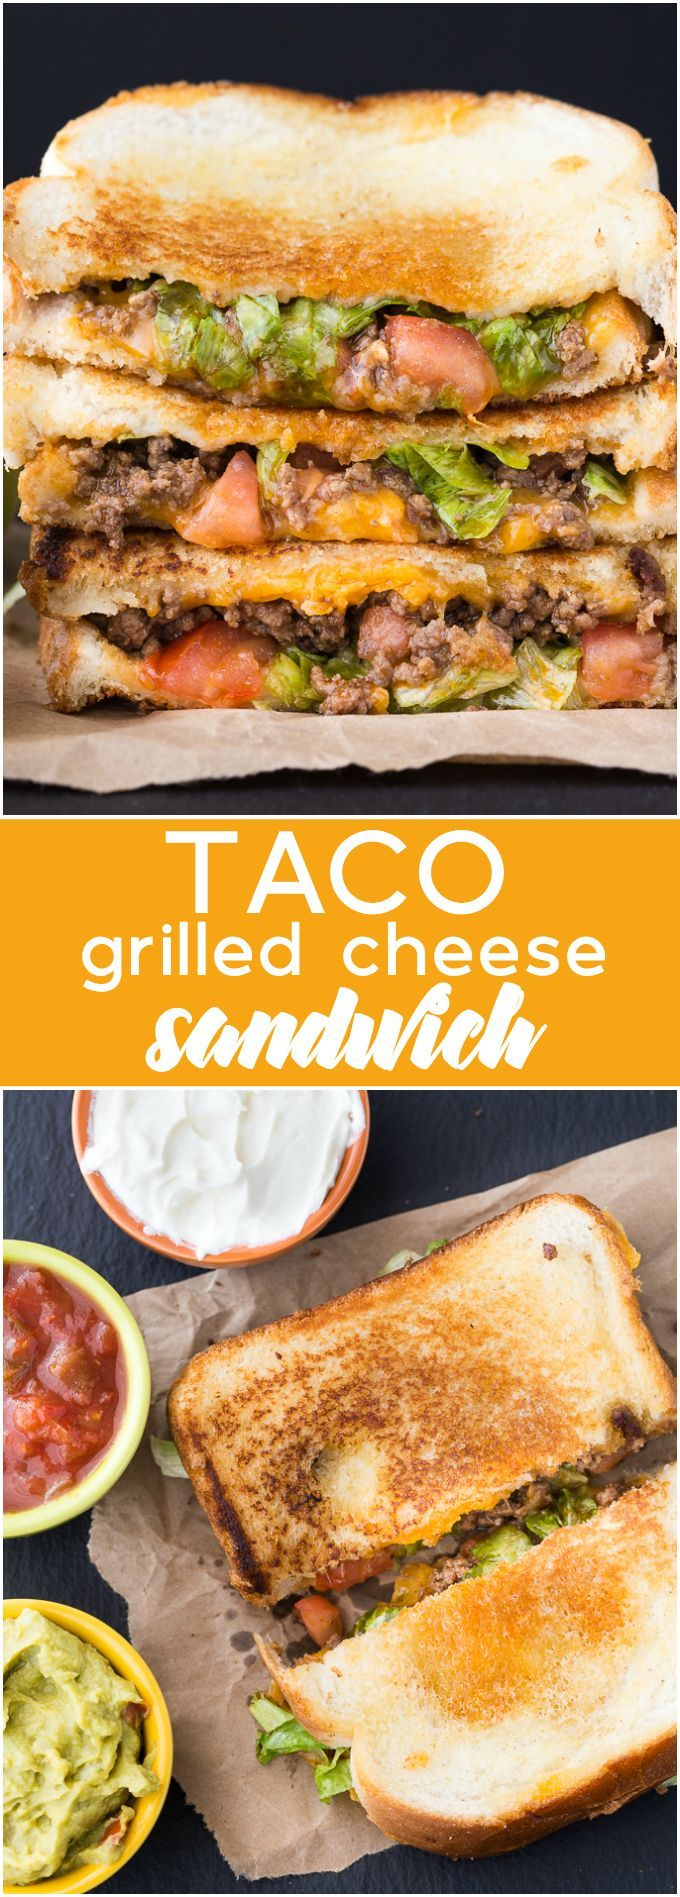 Taco Grilled Cheese Sandwich - Celebrate National Grilled Cheese Day by taking two recipe favourites and combining them into one mouthwatering sandwich! So easy. So good. #Breadventure #NationalGrilledCheeseDay #ad @dempsters